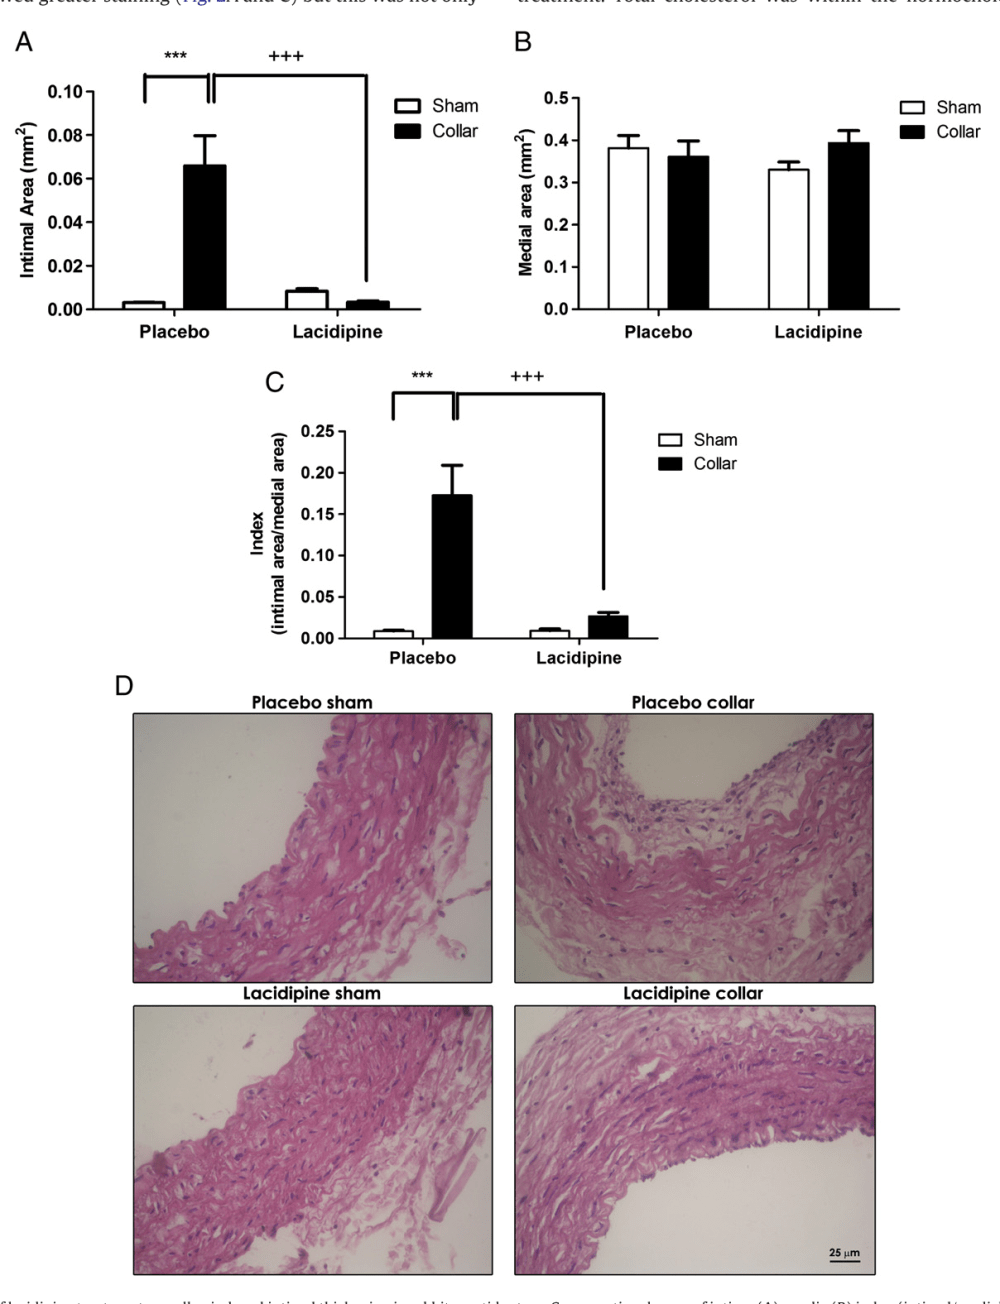 medium resolution of effects of lacidipine treatment on collar induced intimal thickening in rabbit